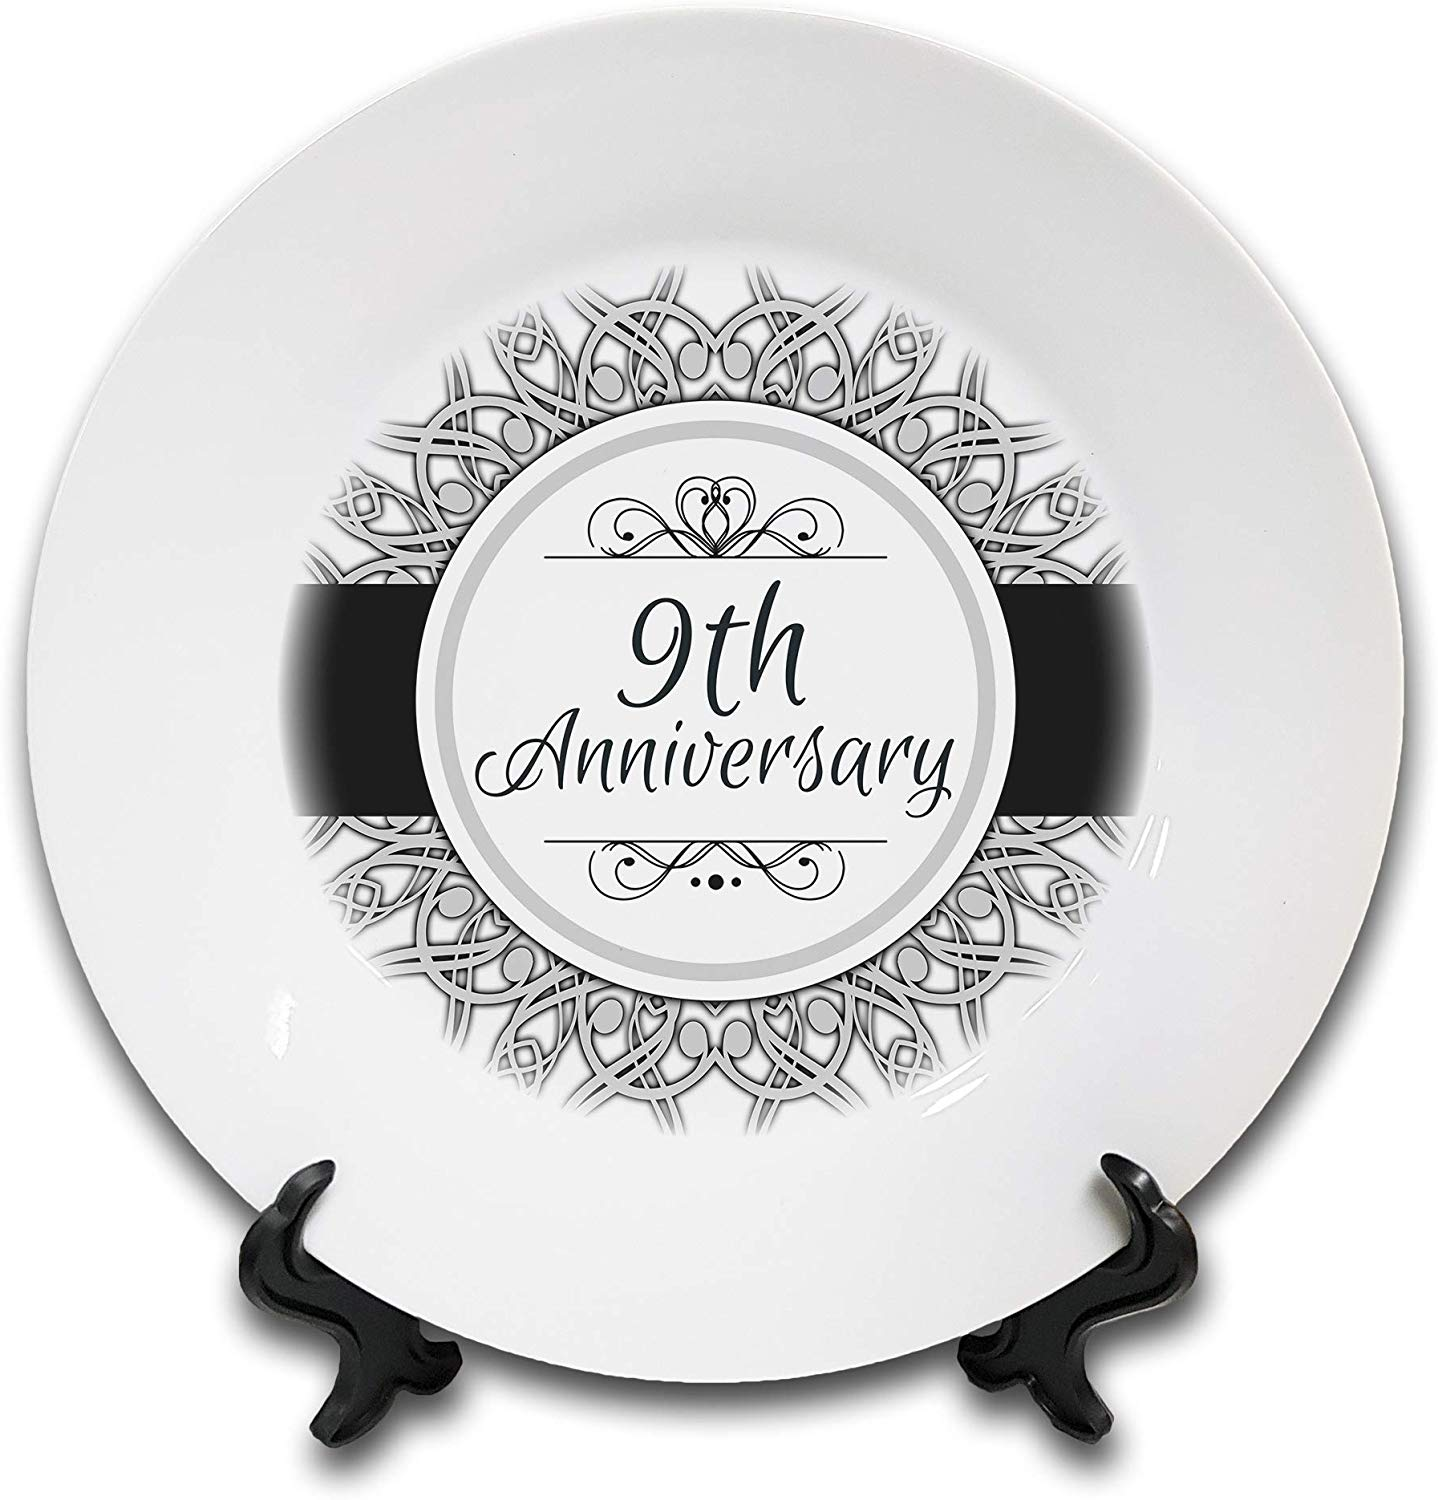 9th Anniversary (Pottery) Novelty Gift Ceramic Plate & Stand